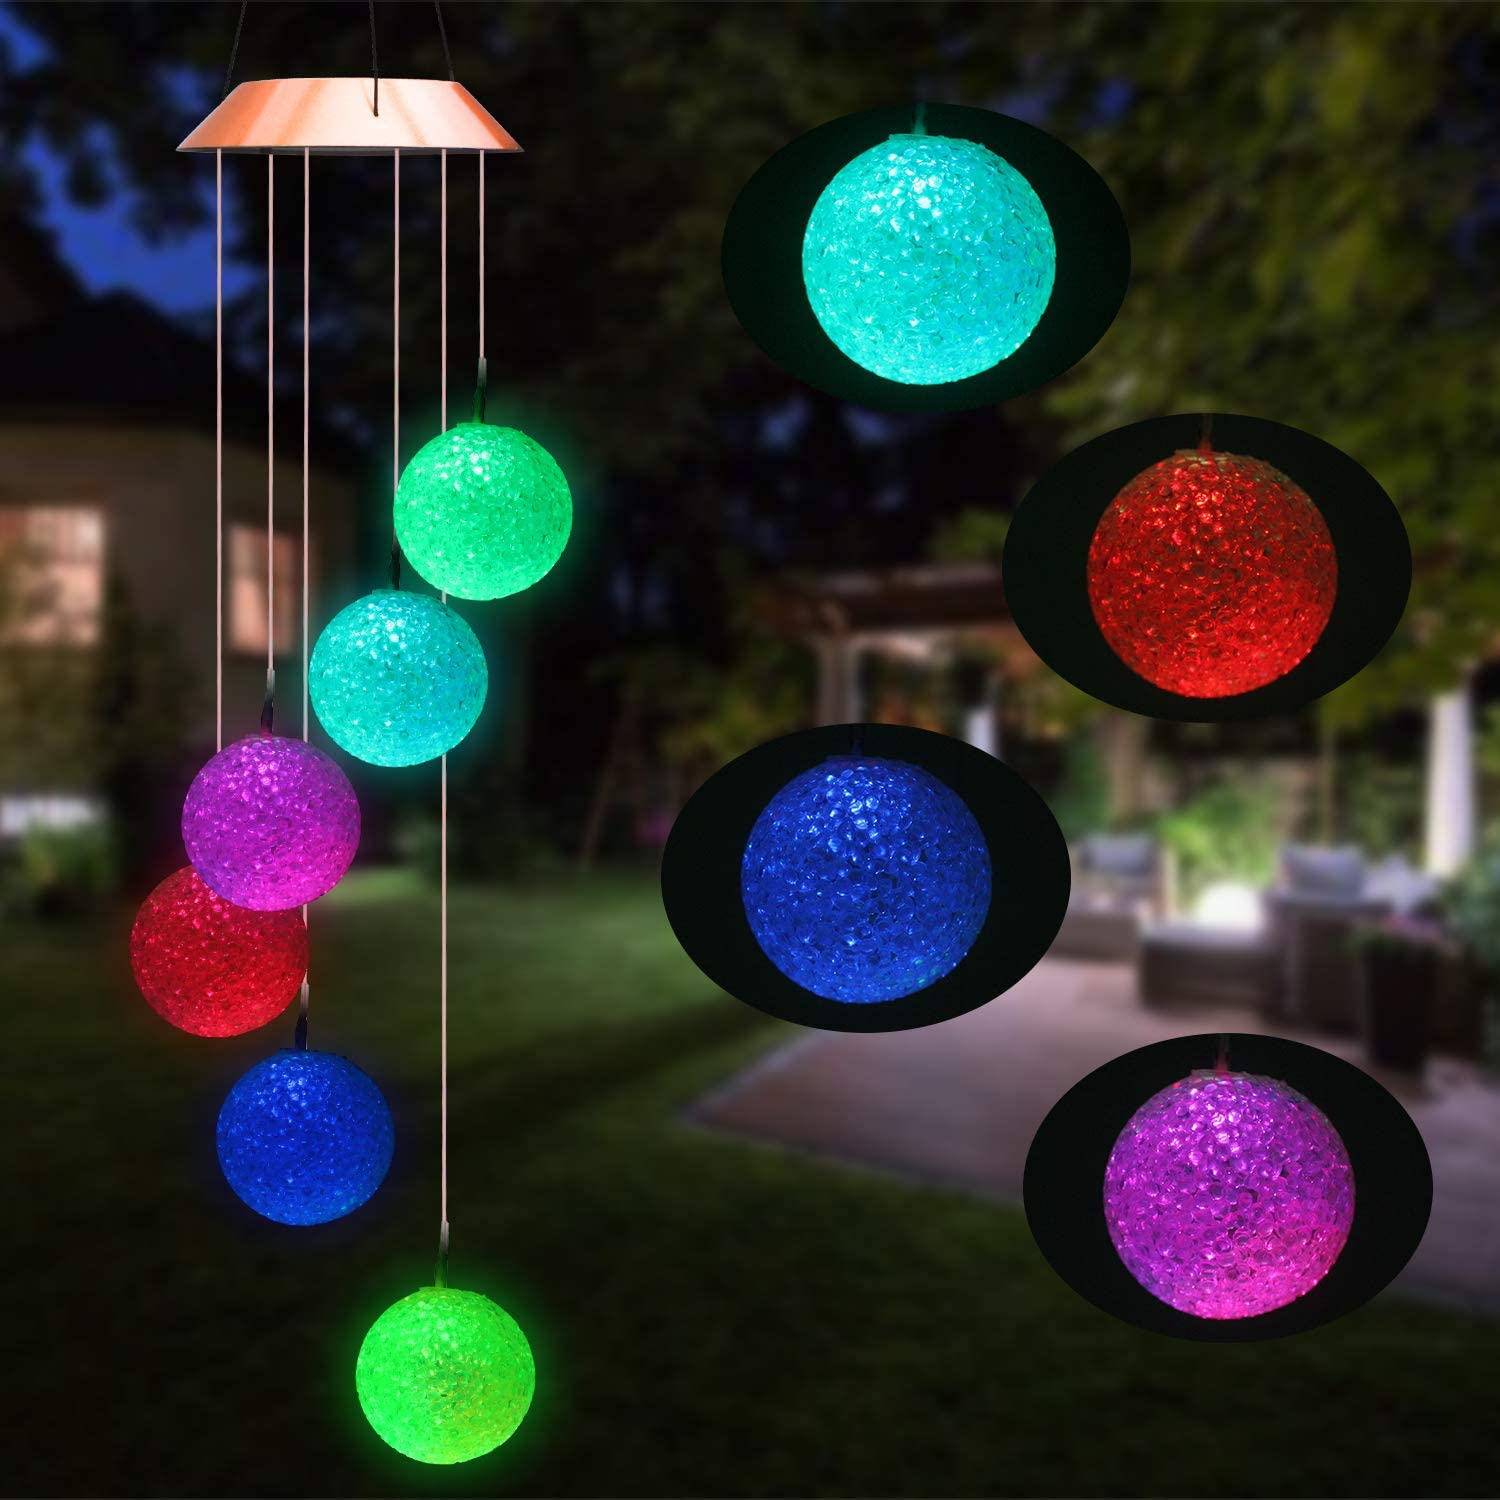 Beinhome Solar Garden Light with 7 Color Changing Crystal Ball Wind Chime Outdoor Garden Decoration Light for Patio, Yard, Home, Pathway